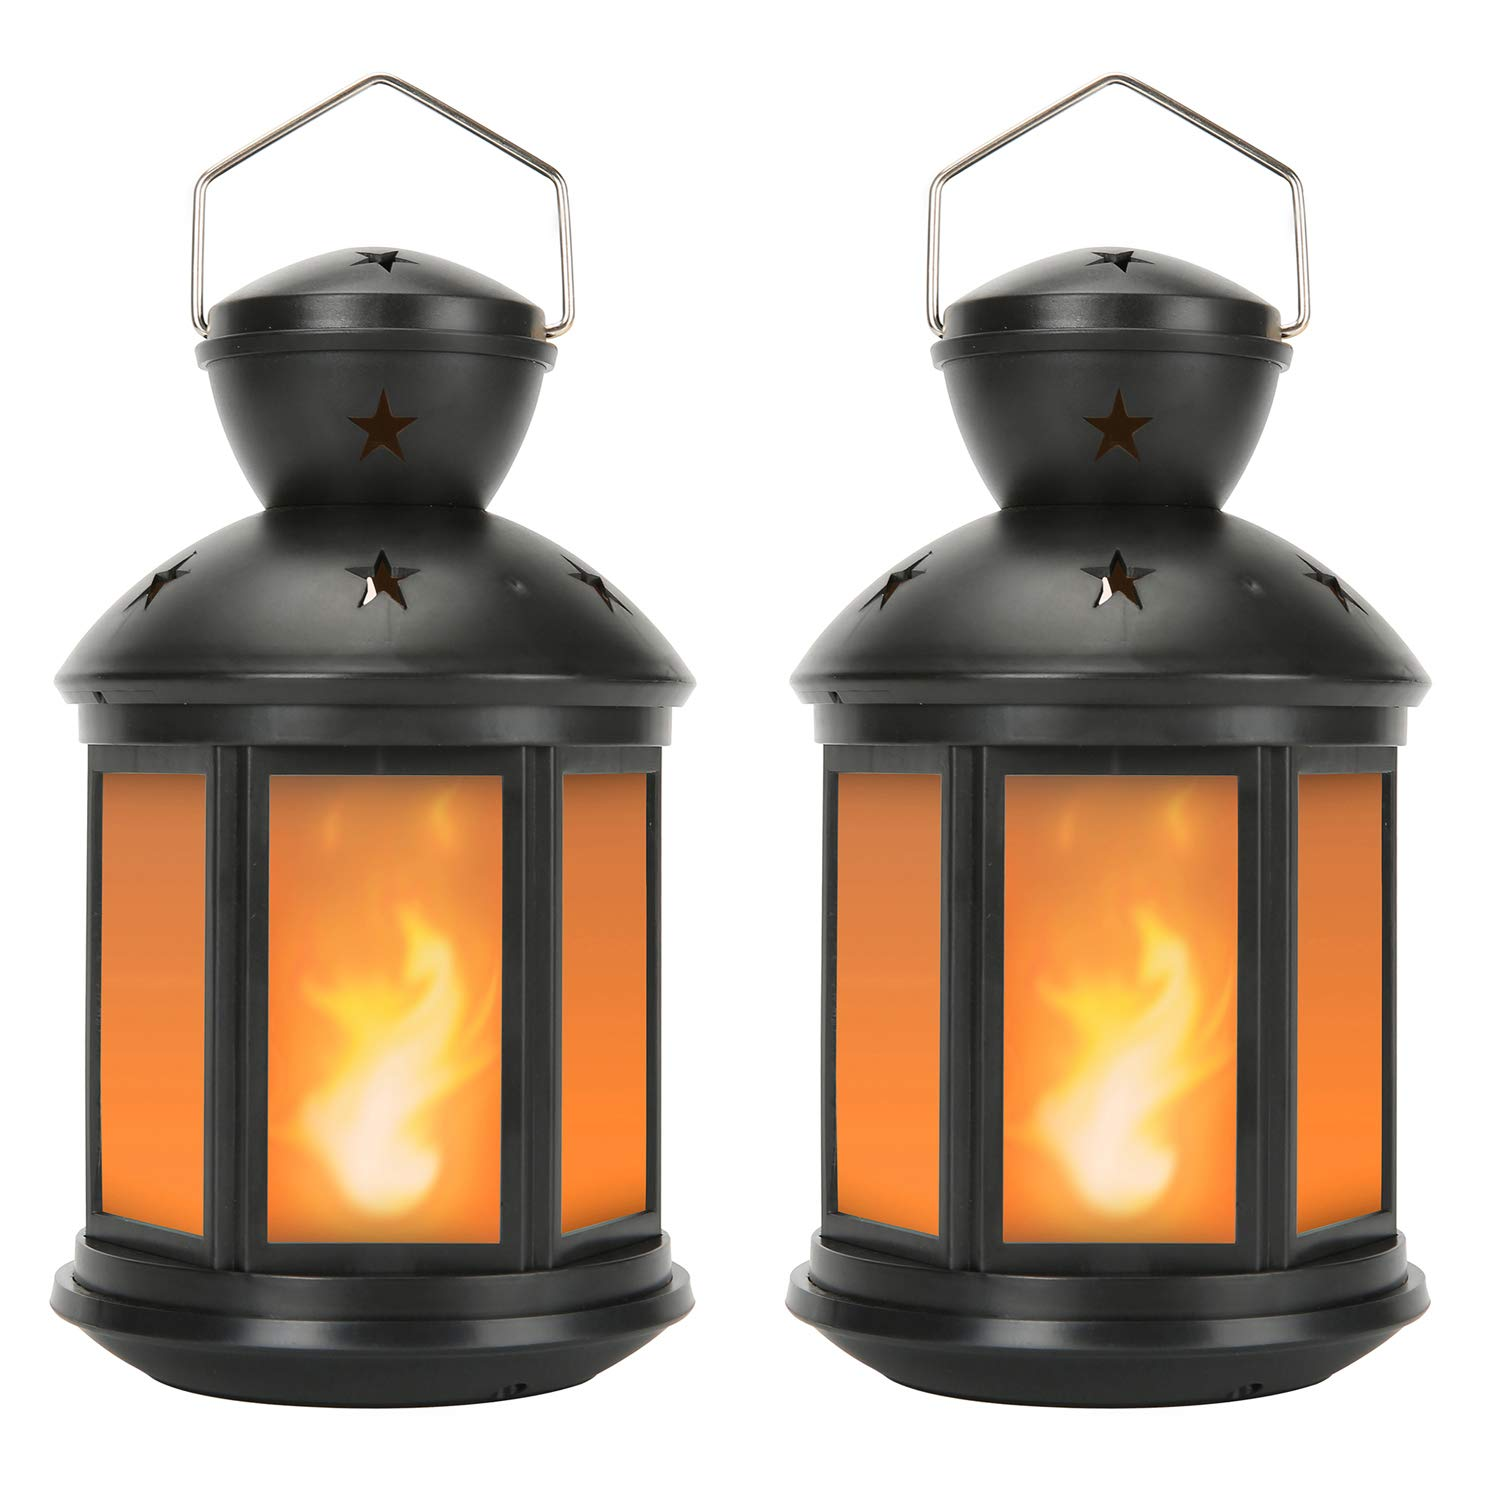 Decorative Lanterns Battery Powered LED, with 6 Hours Timer,Indoor/Outdoor,Lanterns Decorative for Wedding,Parties,Black-2pcs